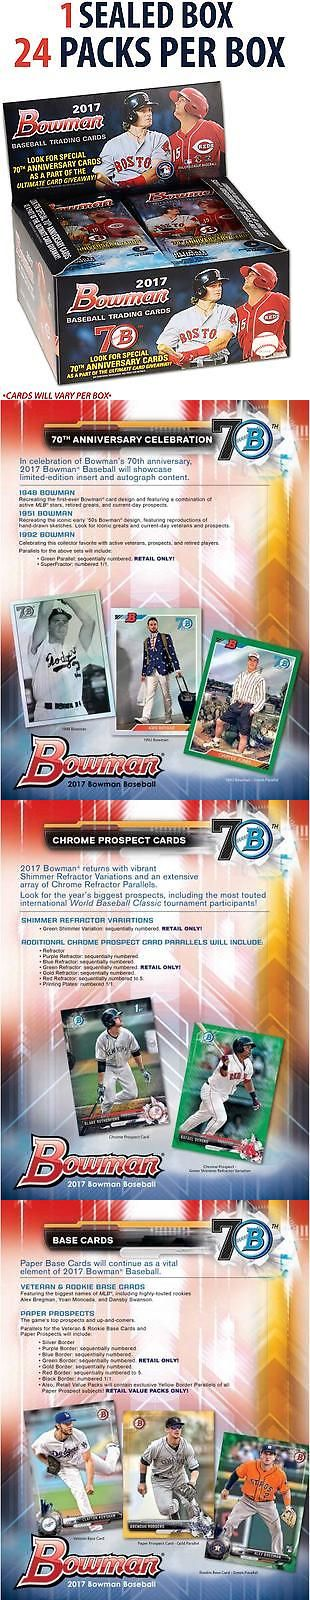 Baseball Cards 213: 2017 Bowman Baseball Factory Sealed 24 Pack Box Fanatics Authentic Certified -> BUY IT NOW ONLY: $69.99 on eBay!